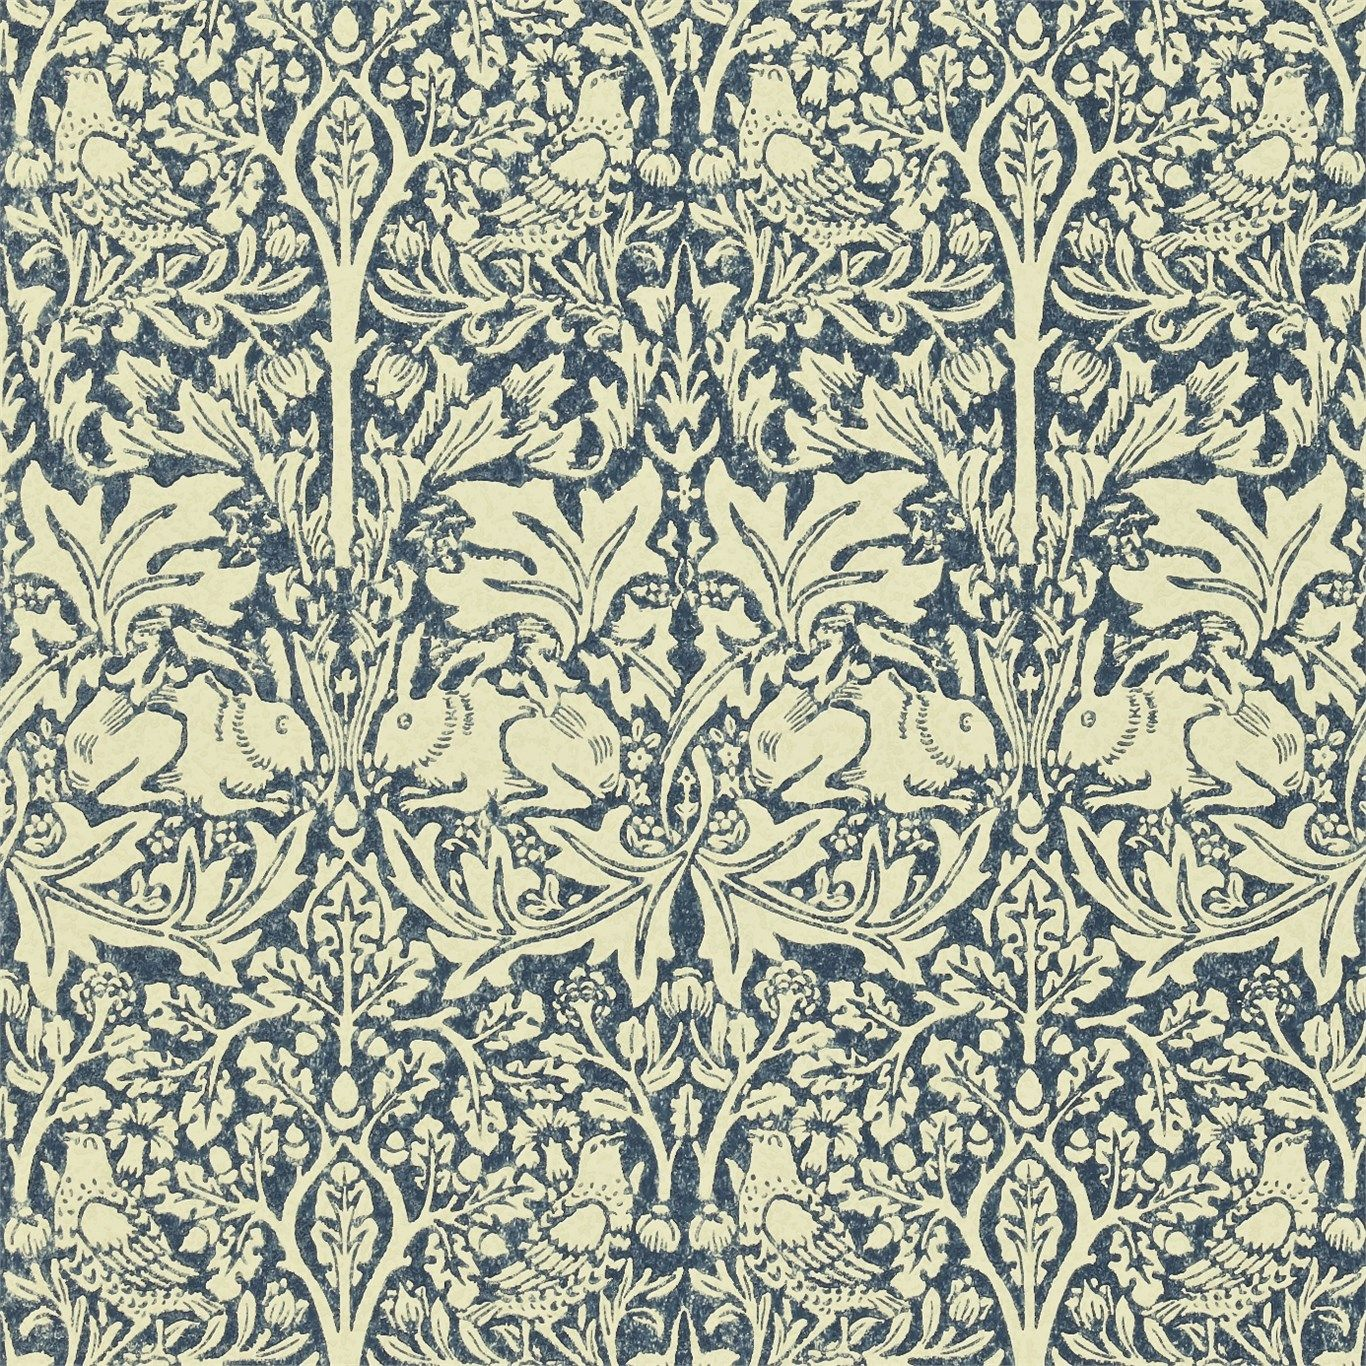 Morris & Co Brer Rabbit Wallpaper William morris